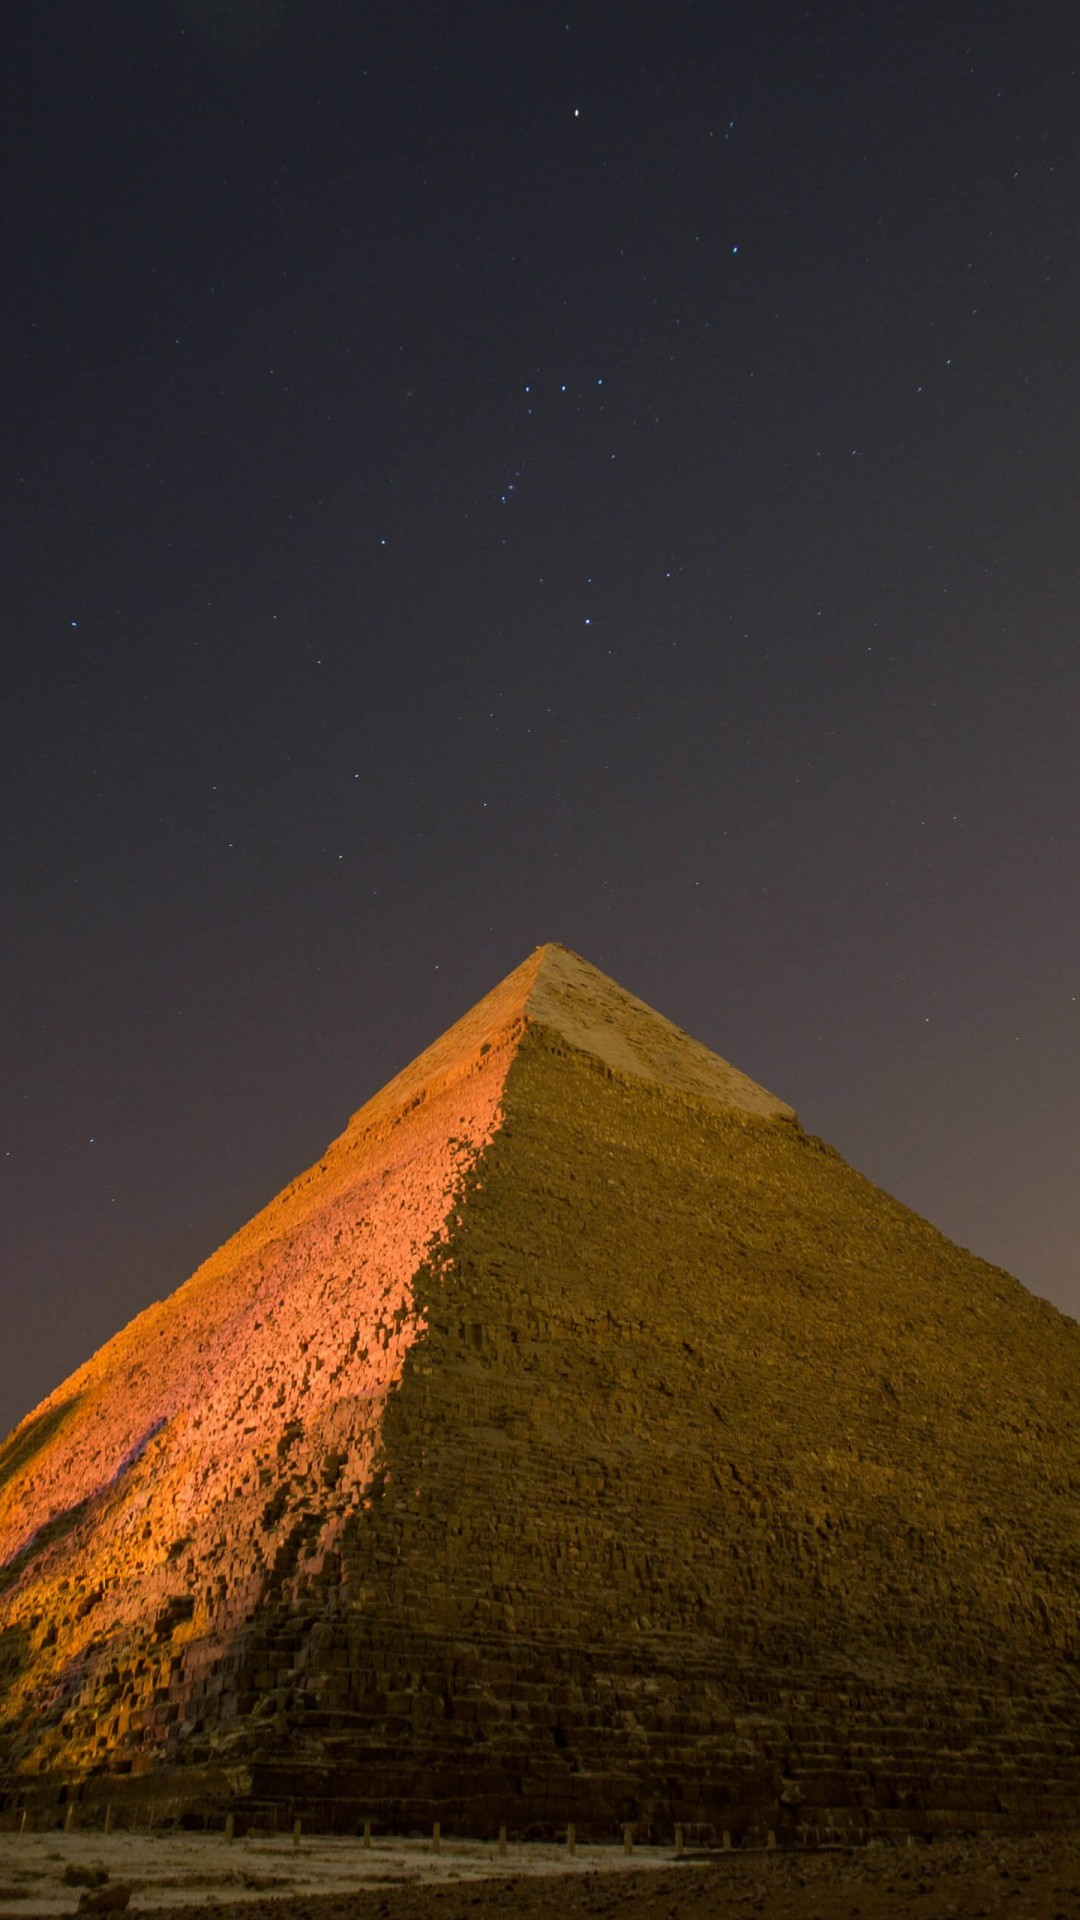 Download Pyramid By Night Hd Wallpaper For Moto X